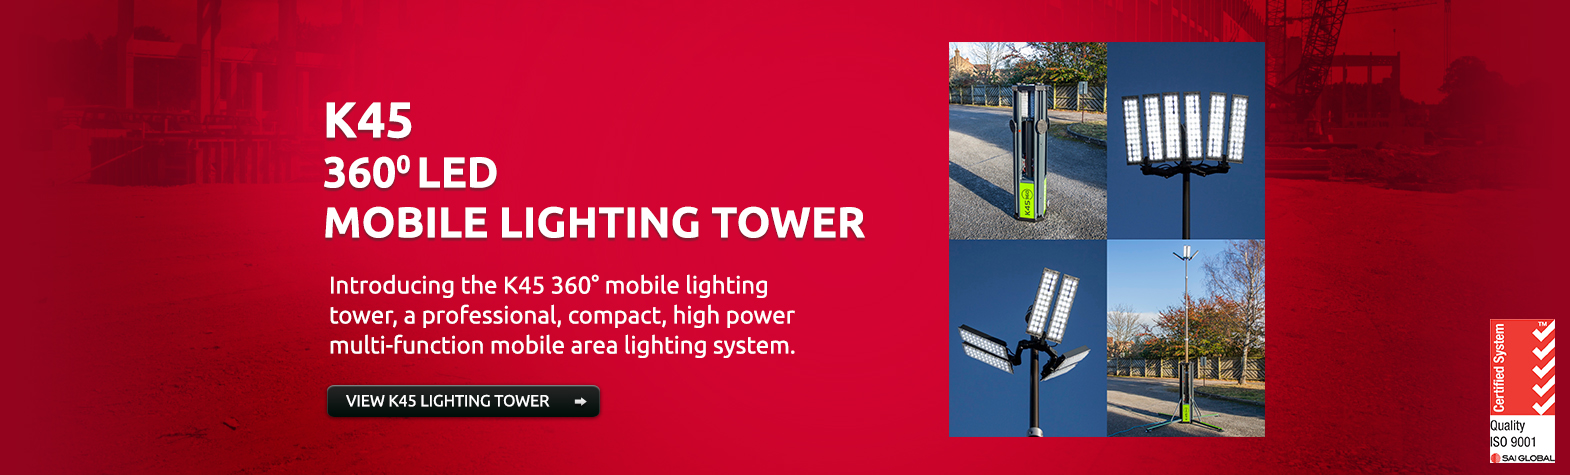 K45 lighting tower